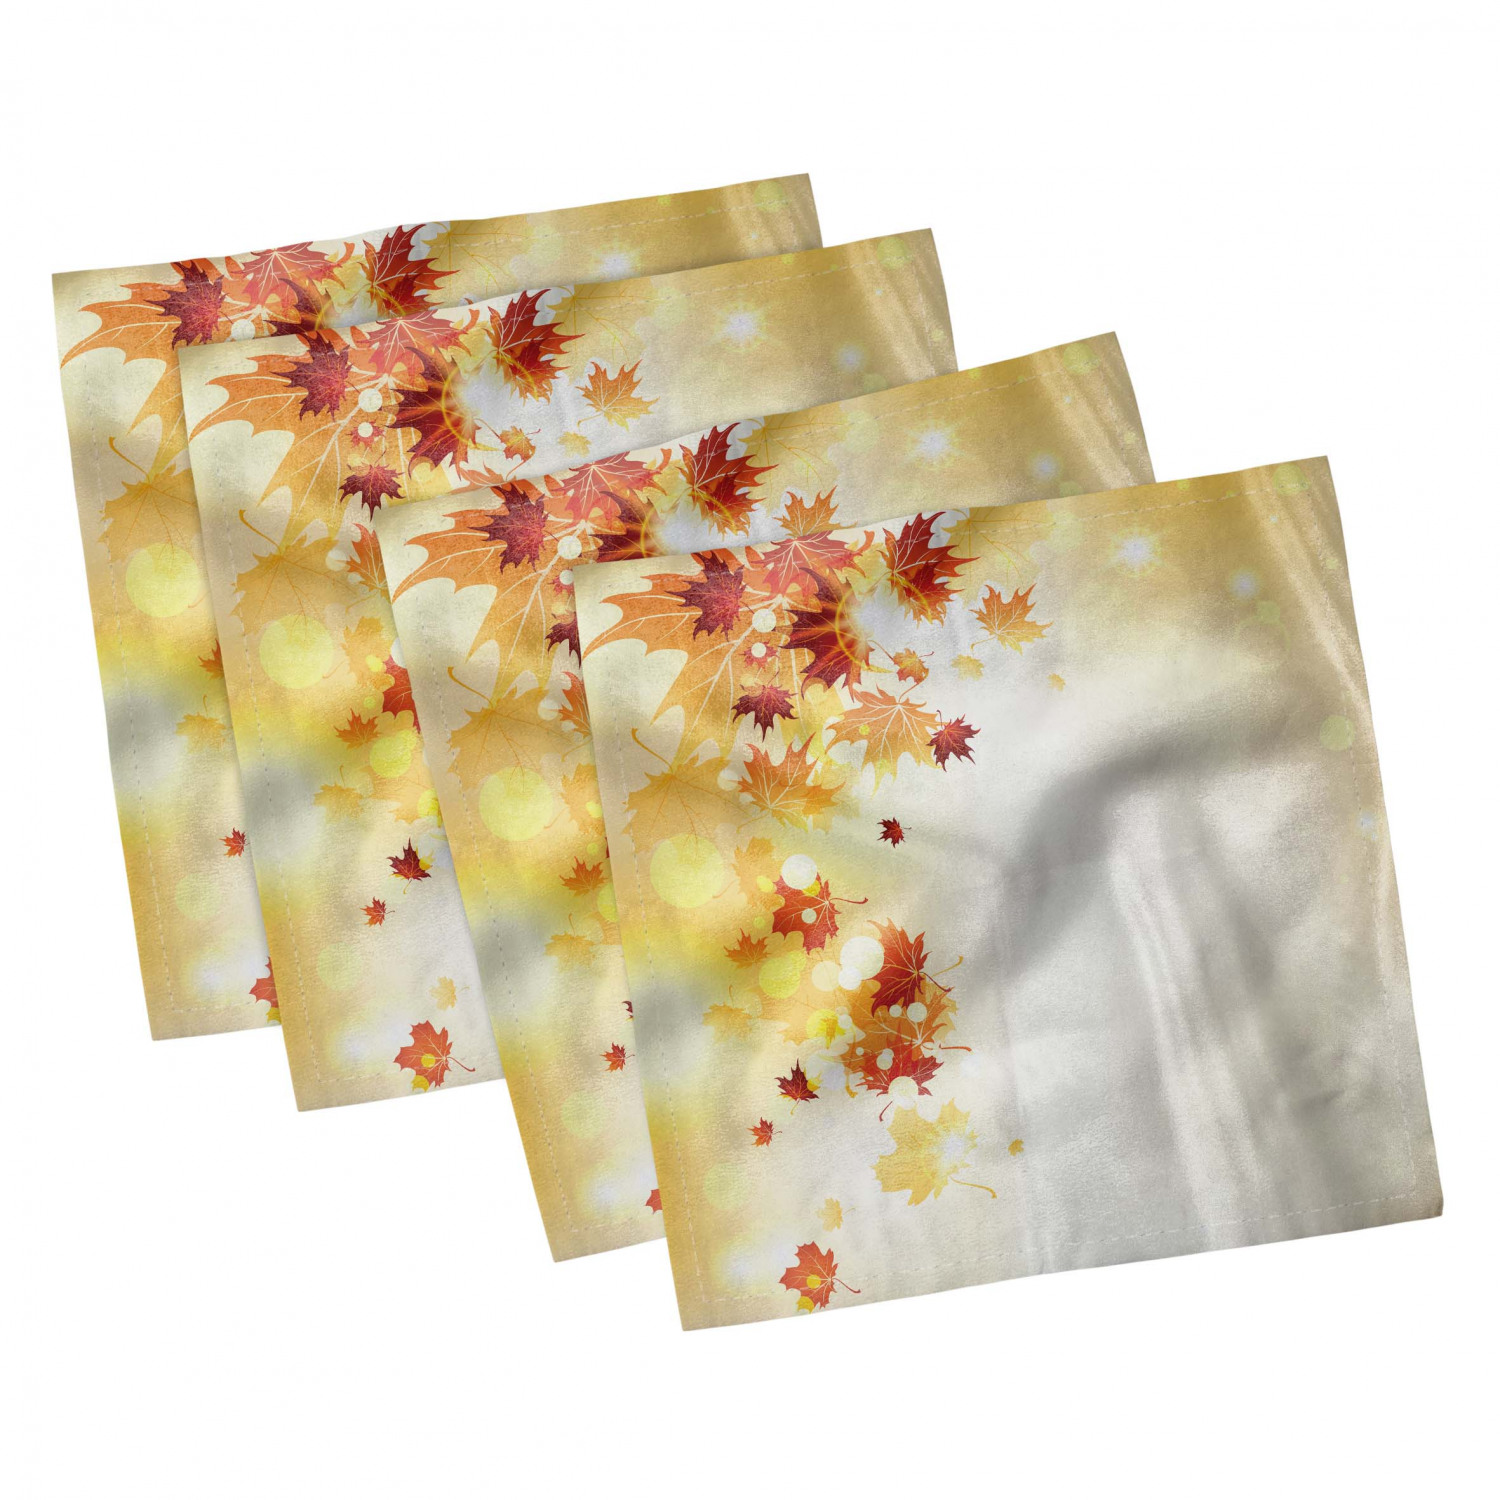 thumbnail 51 - Ambesonne Autumn Fall Decorative Satin Napkins Set of 4 Party Dinner Fabric